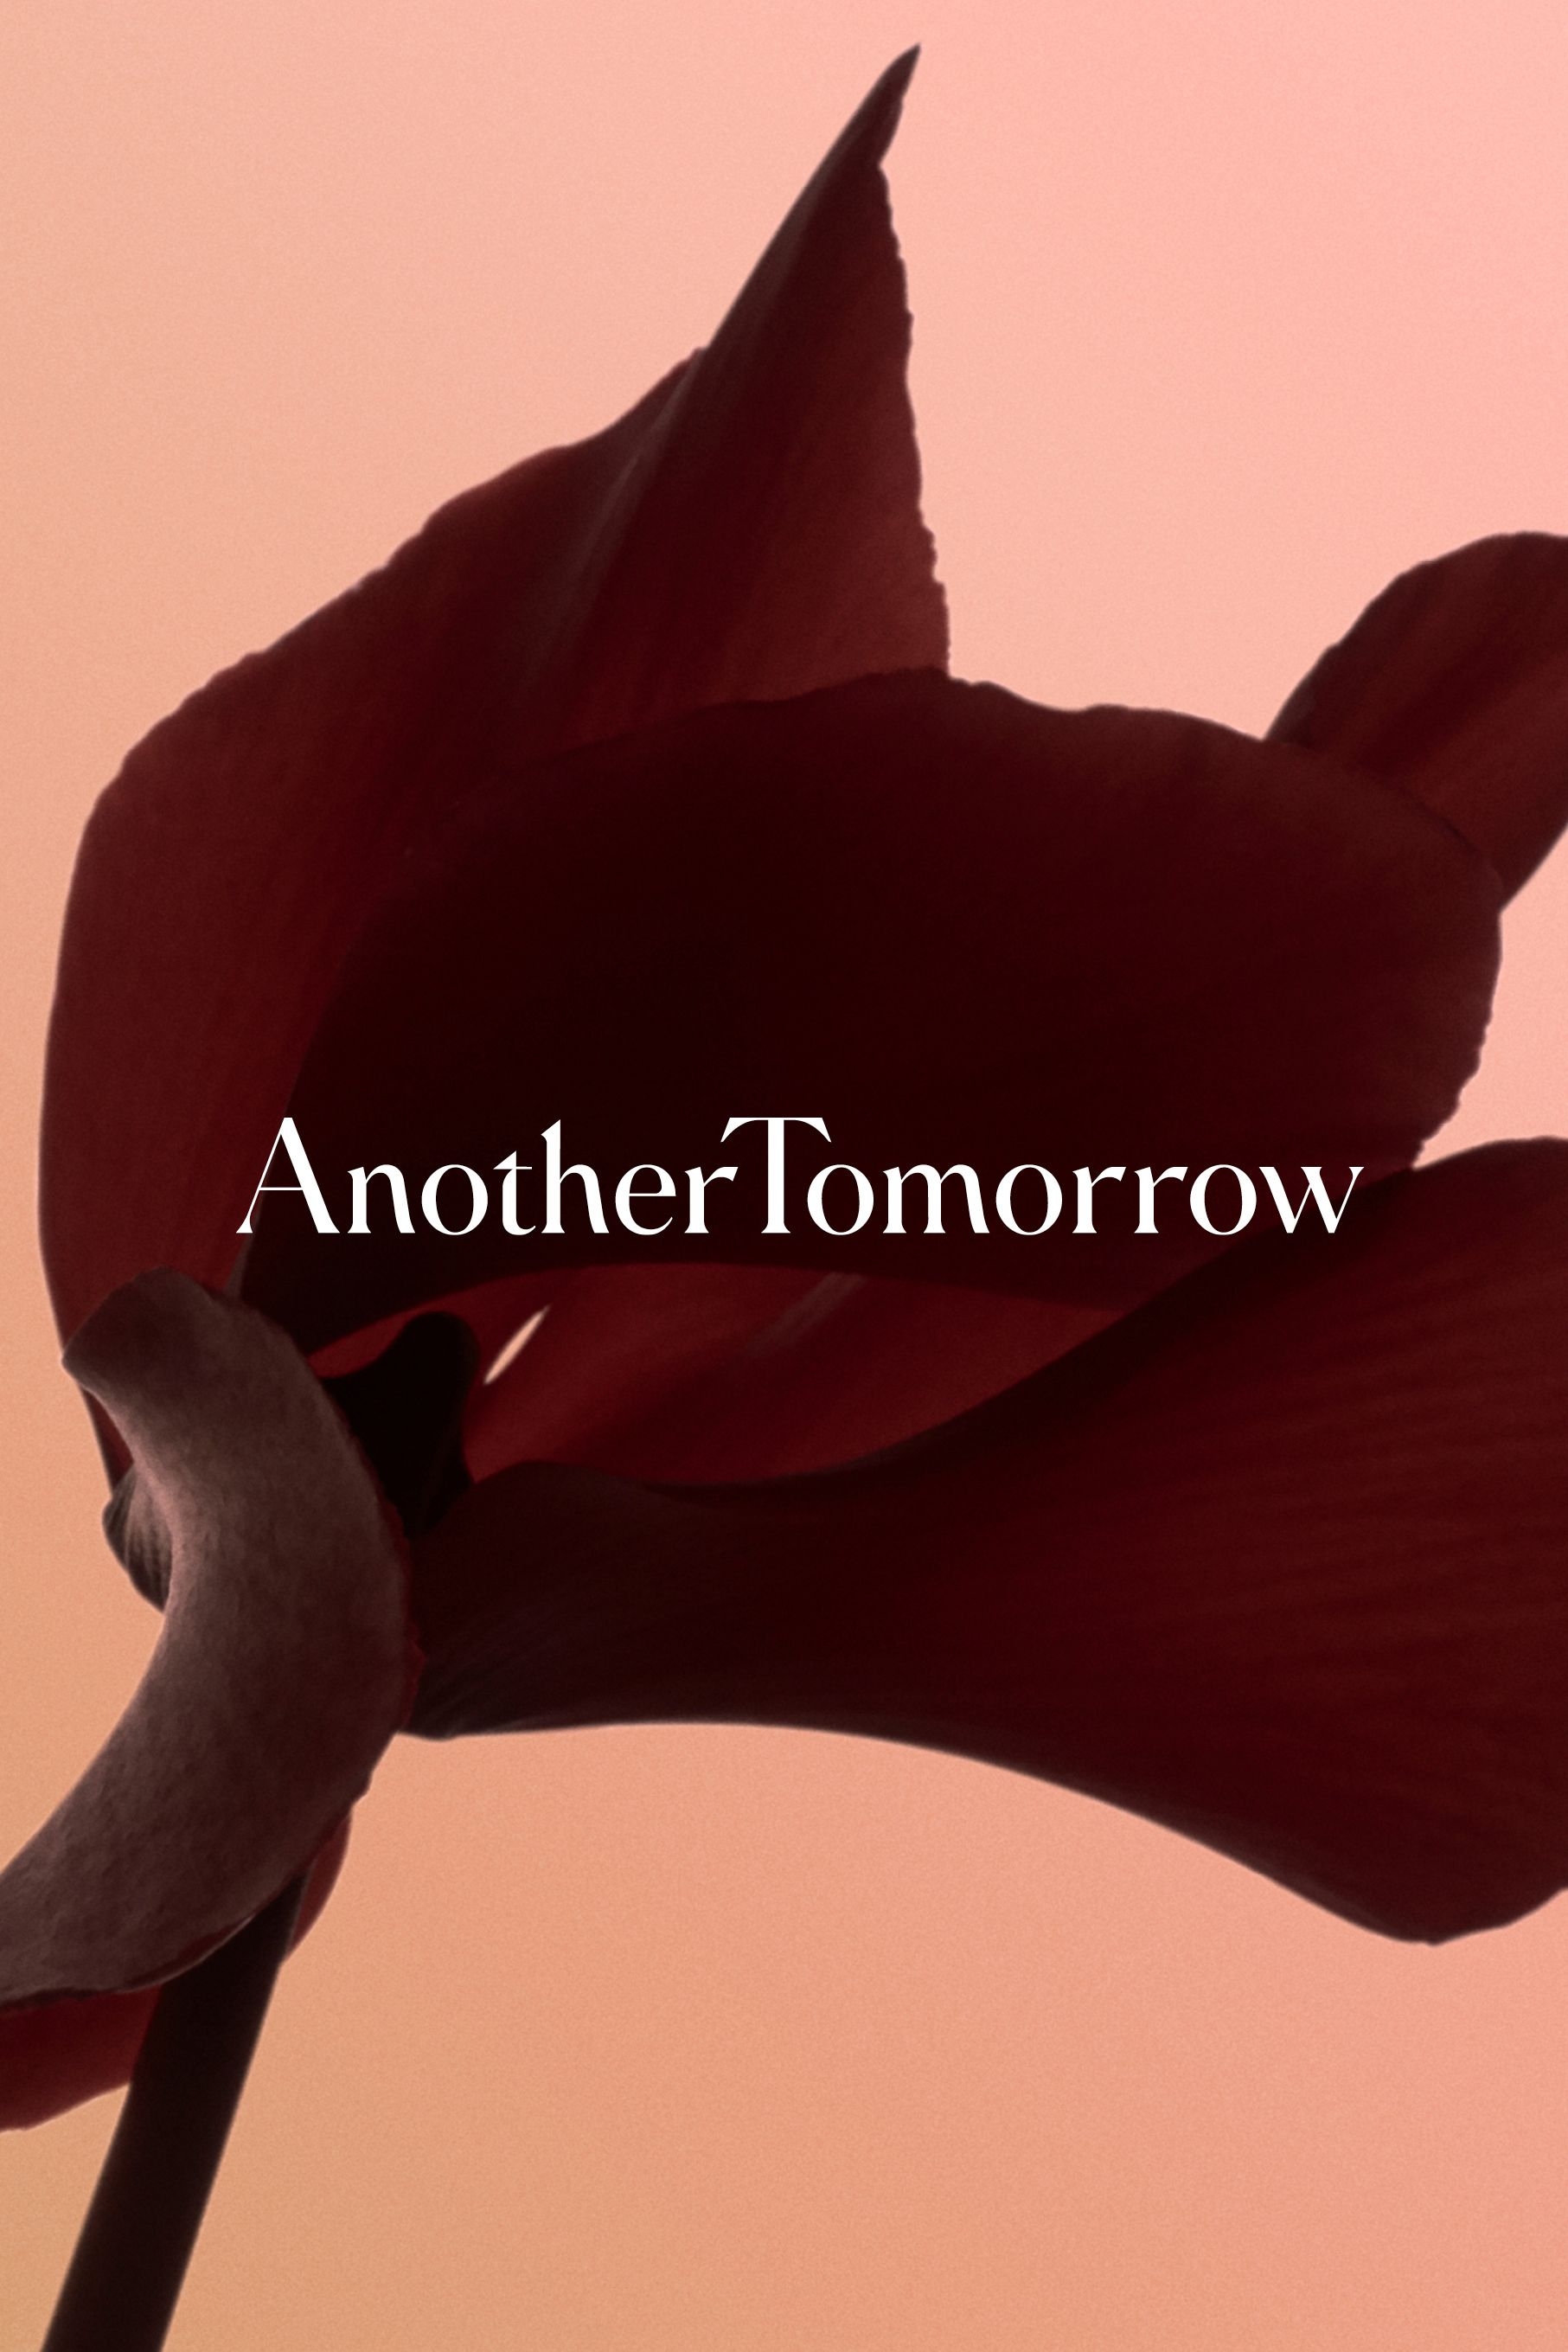 Another Tomorrow campaign image